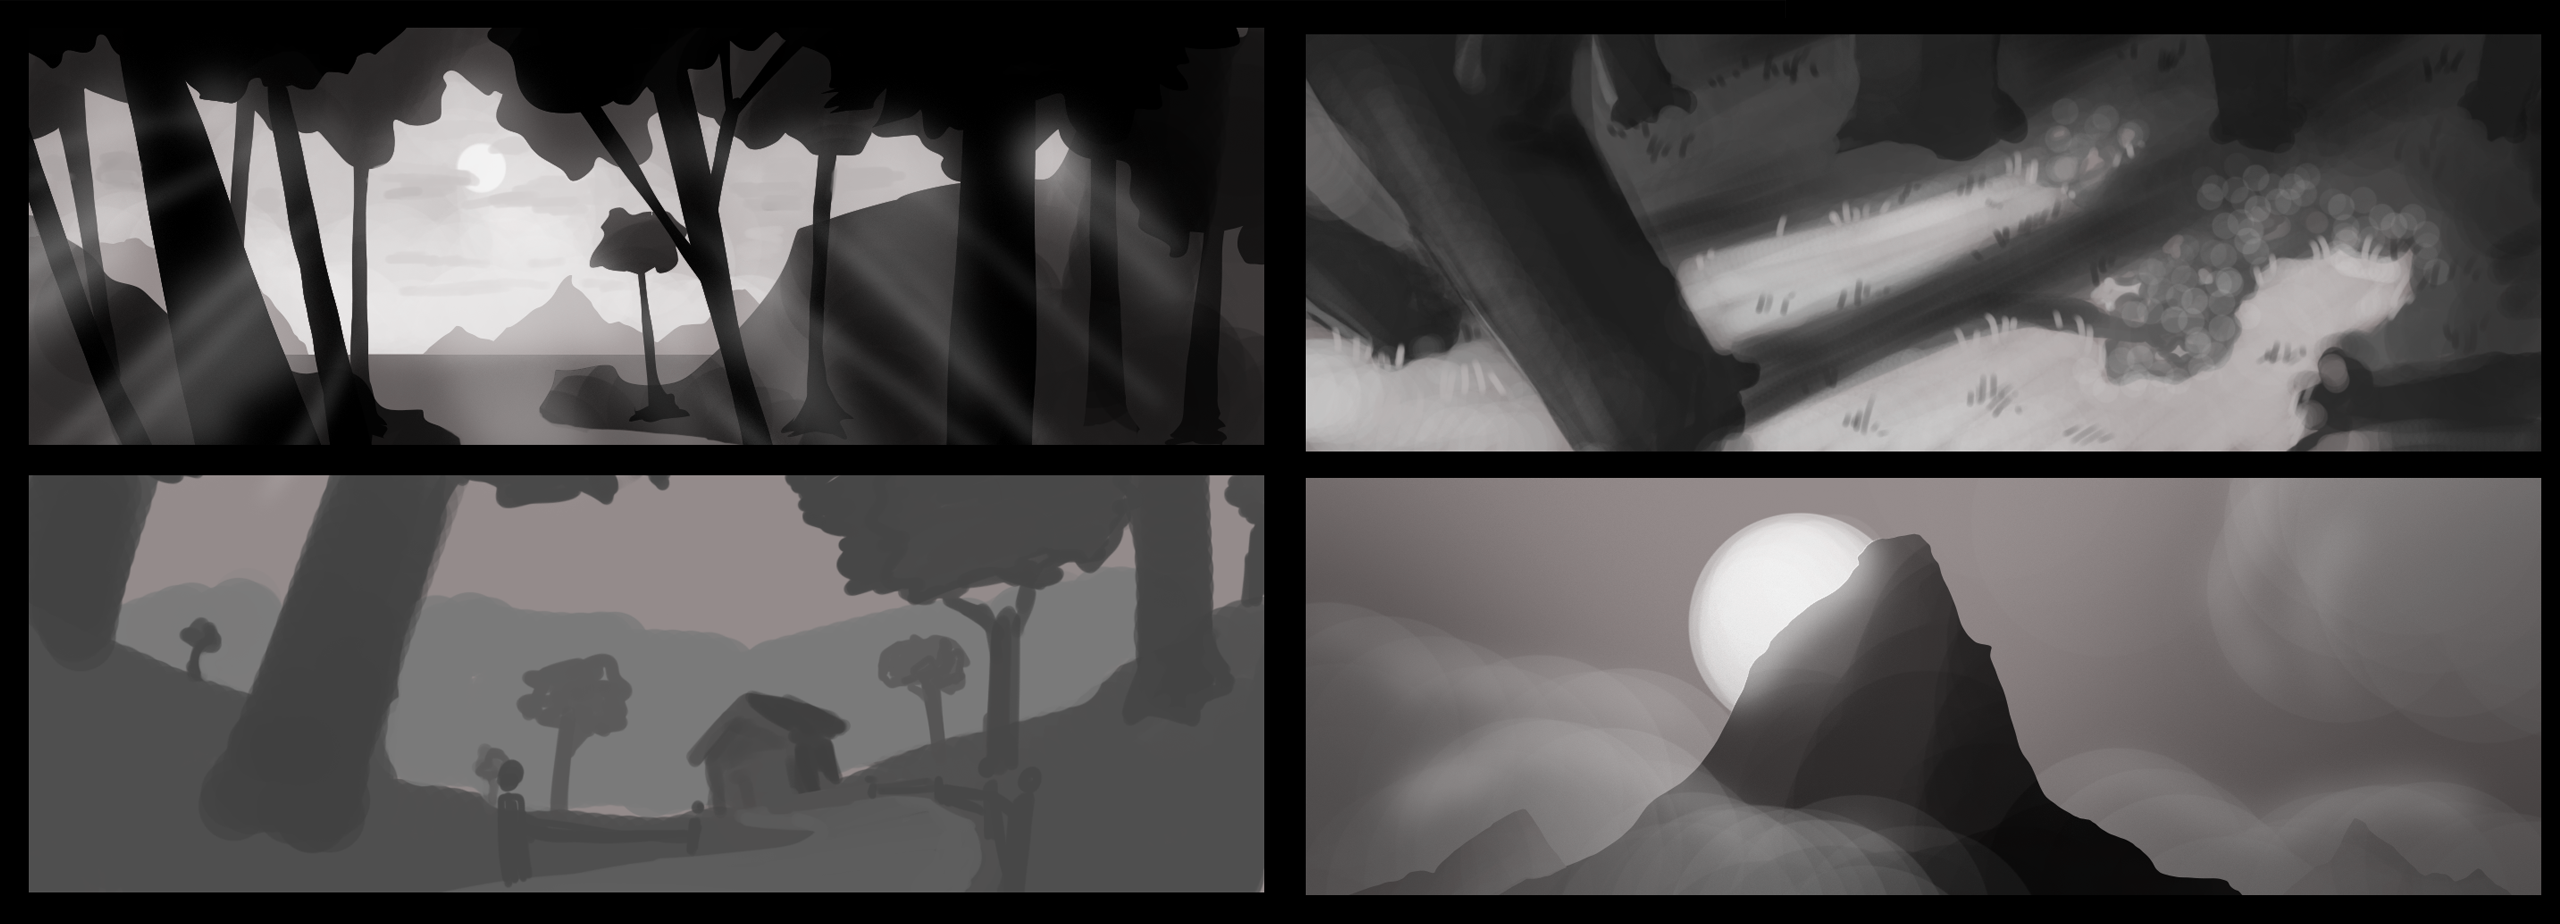 EnvironmentsThumbnails_001